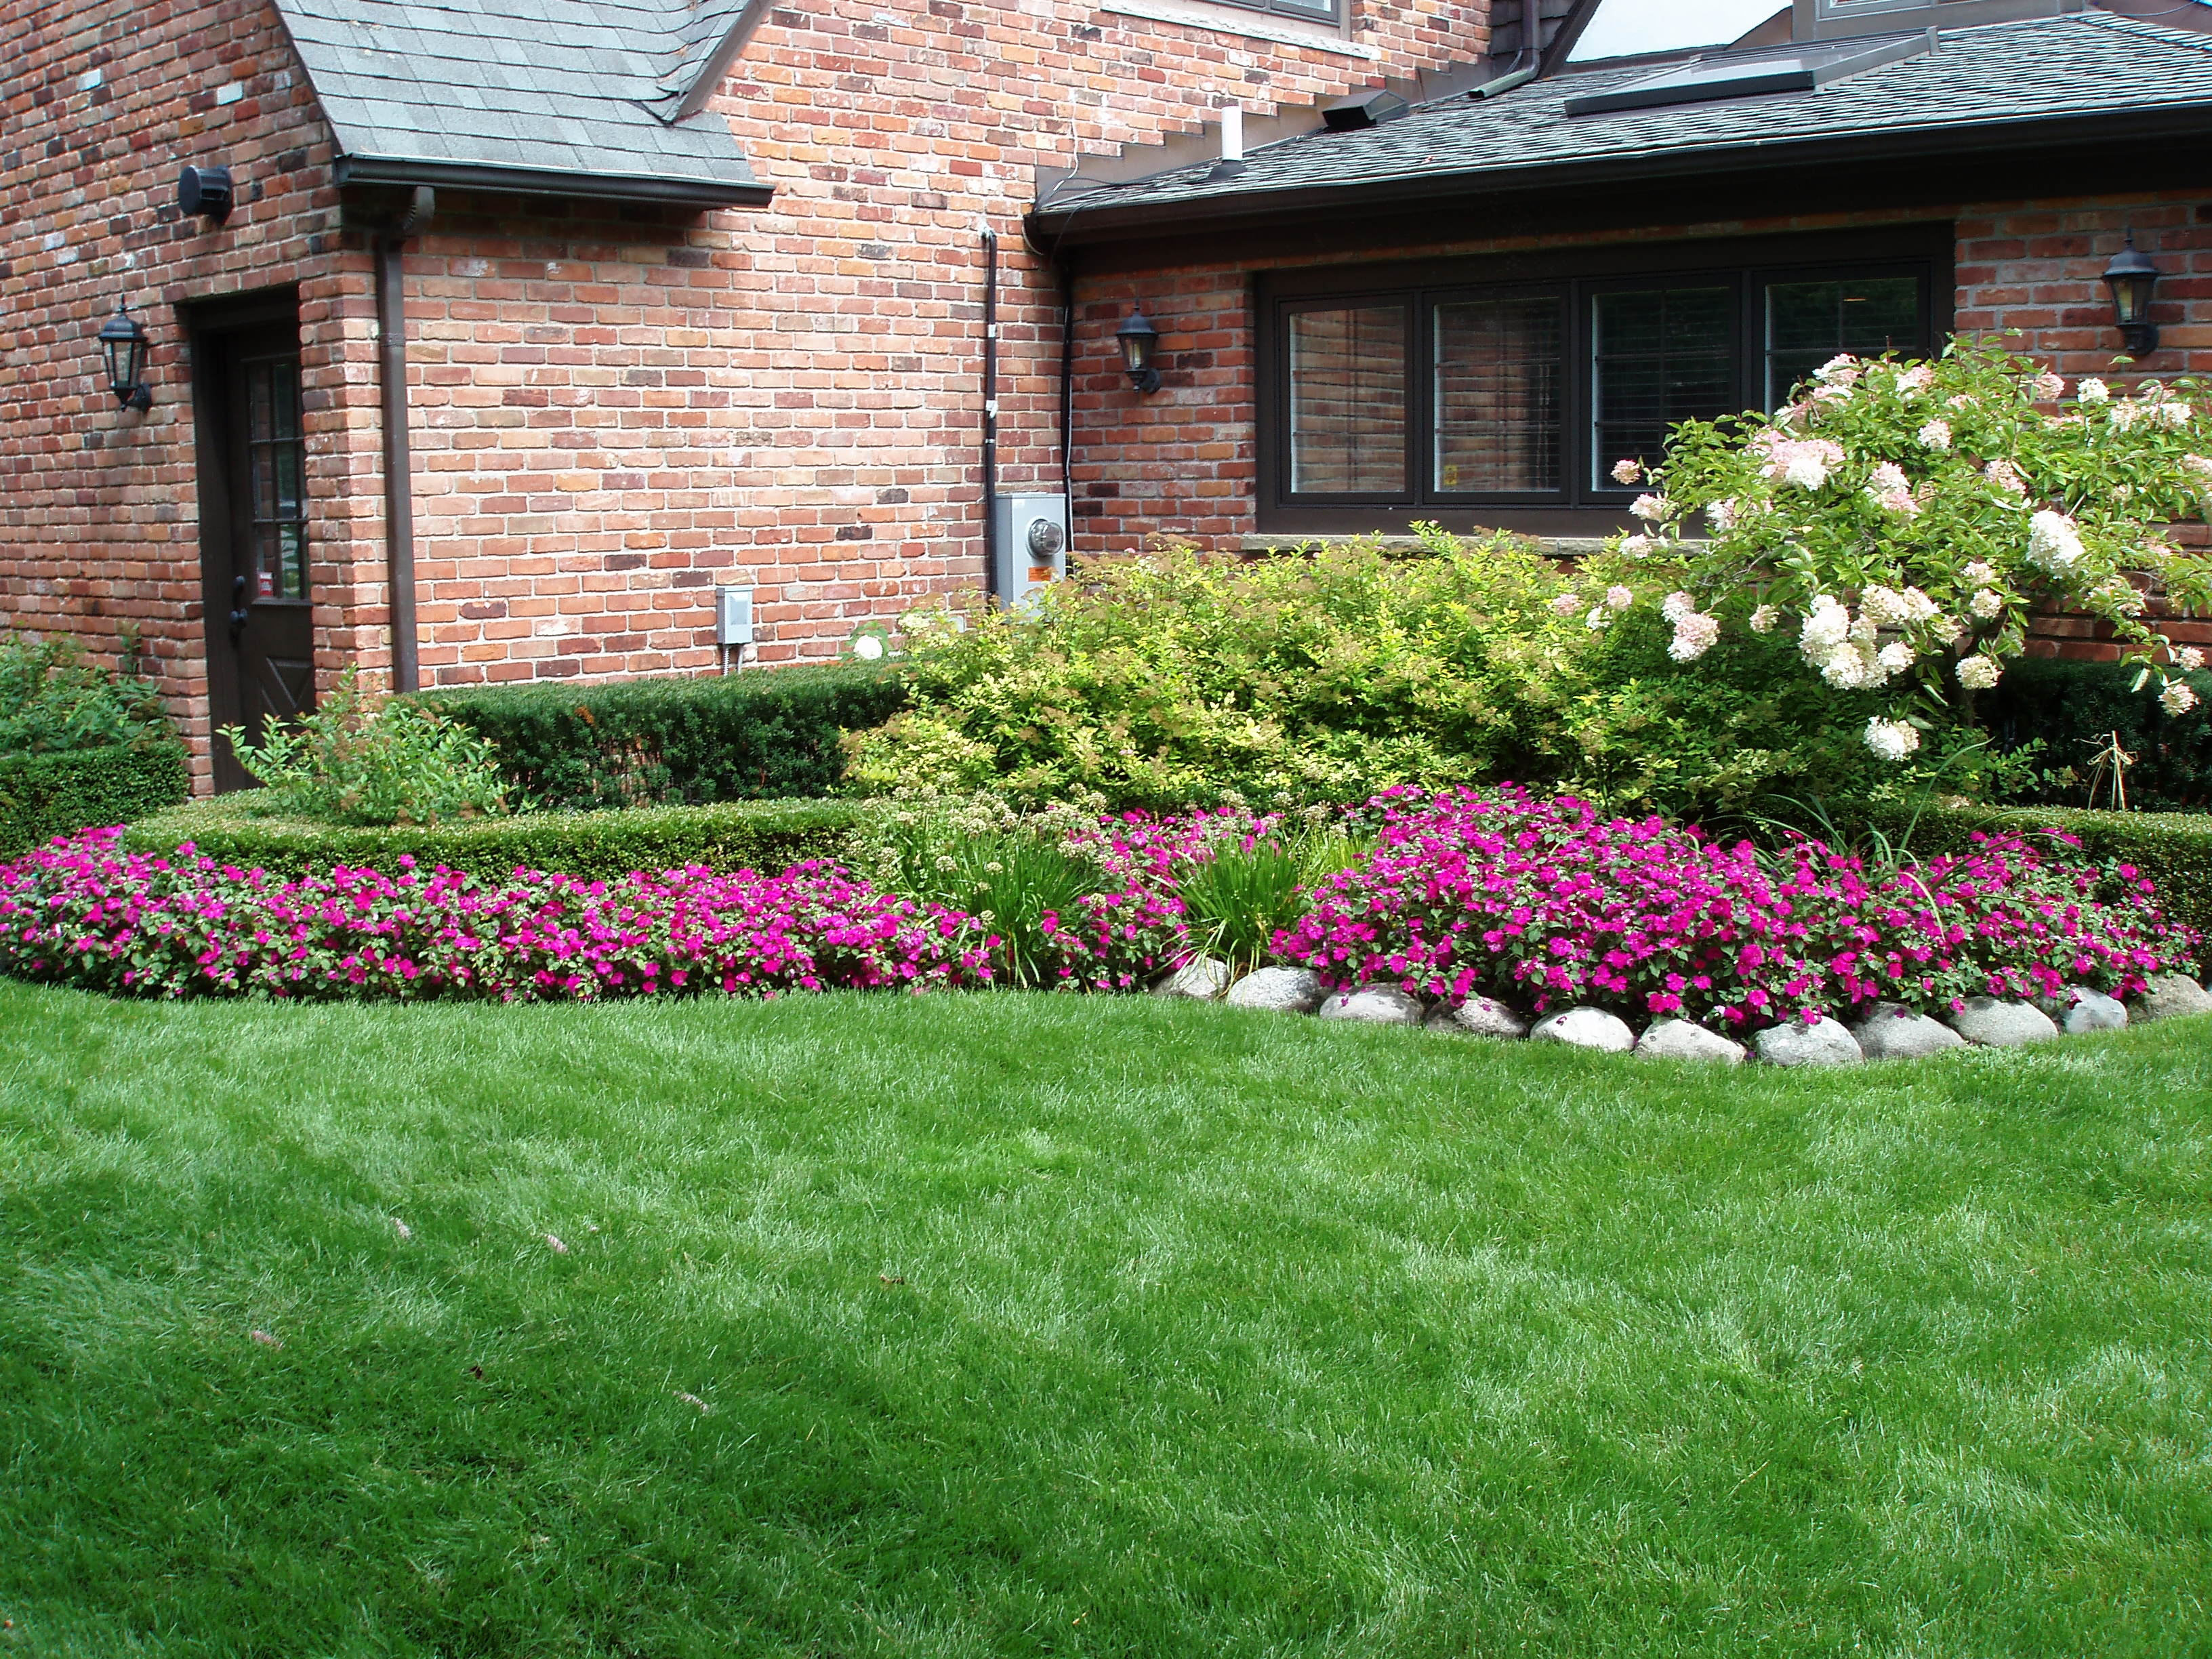 Landscaping total lawn care inc full lawn maintenance for Front yard landscape design photos